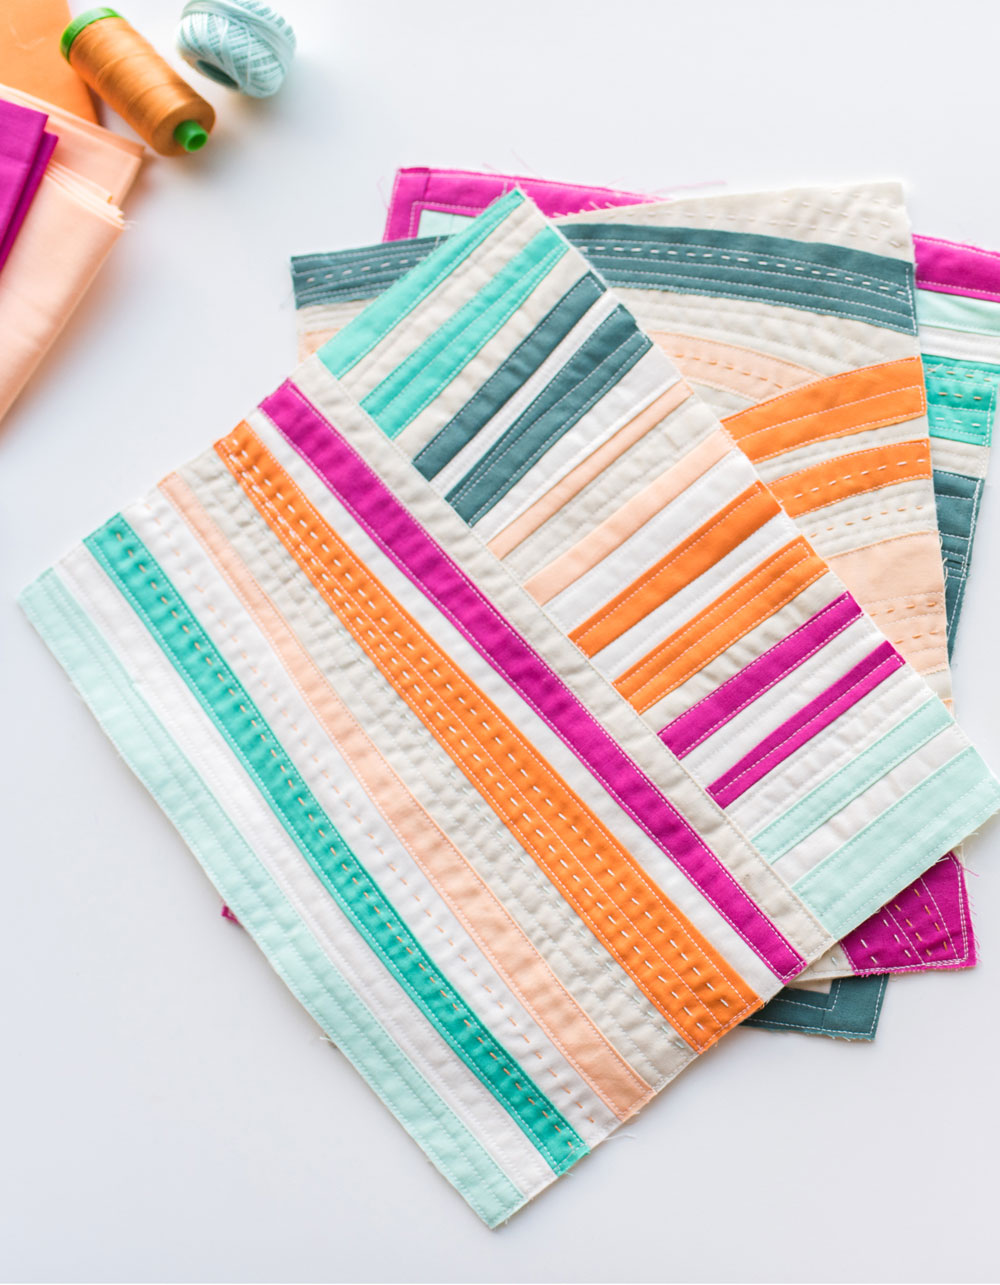 3 Strategies to Get Out of a Sewing Rut! Inspire your creativity for sewing! Suzy Quilts - https://suzyquilts.com/3-strategies-to-get-out-of-a-sewing-rut/